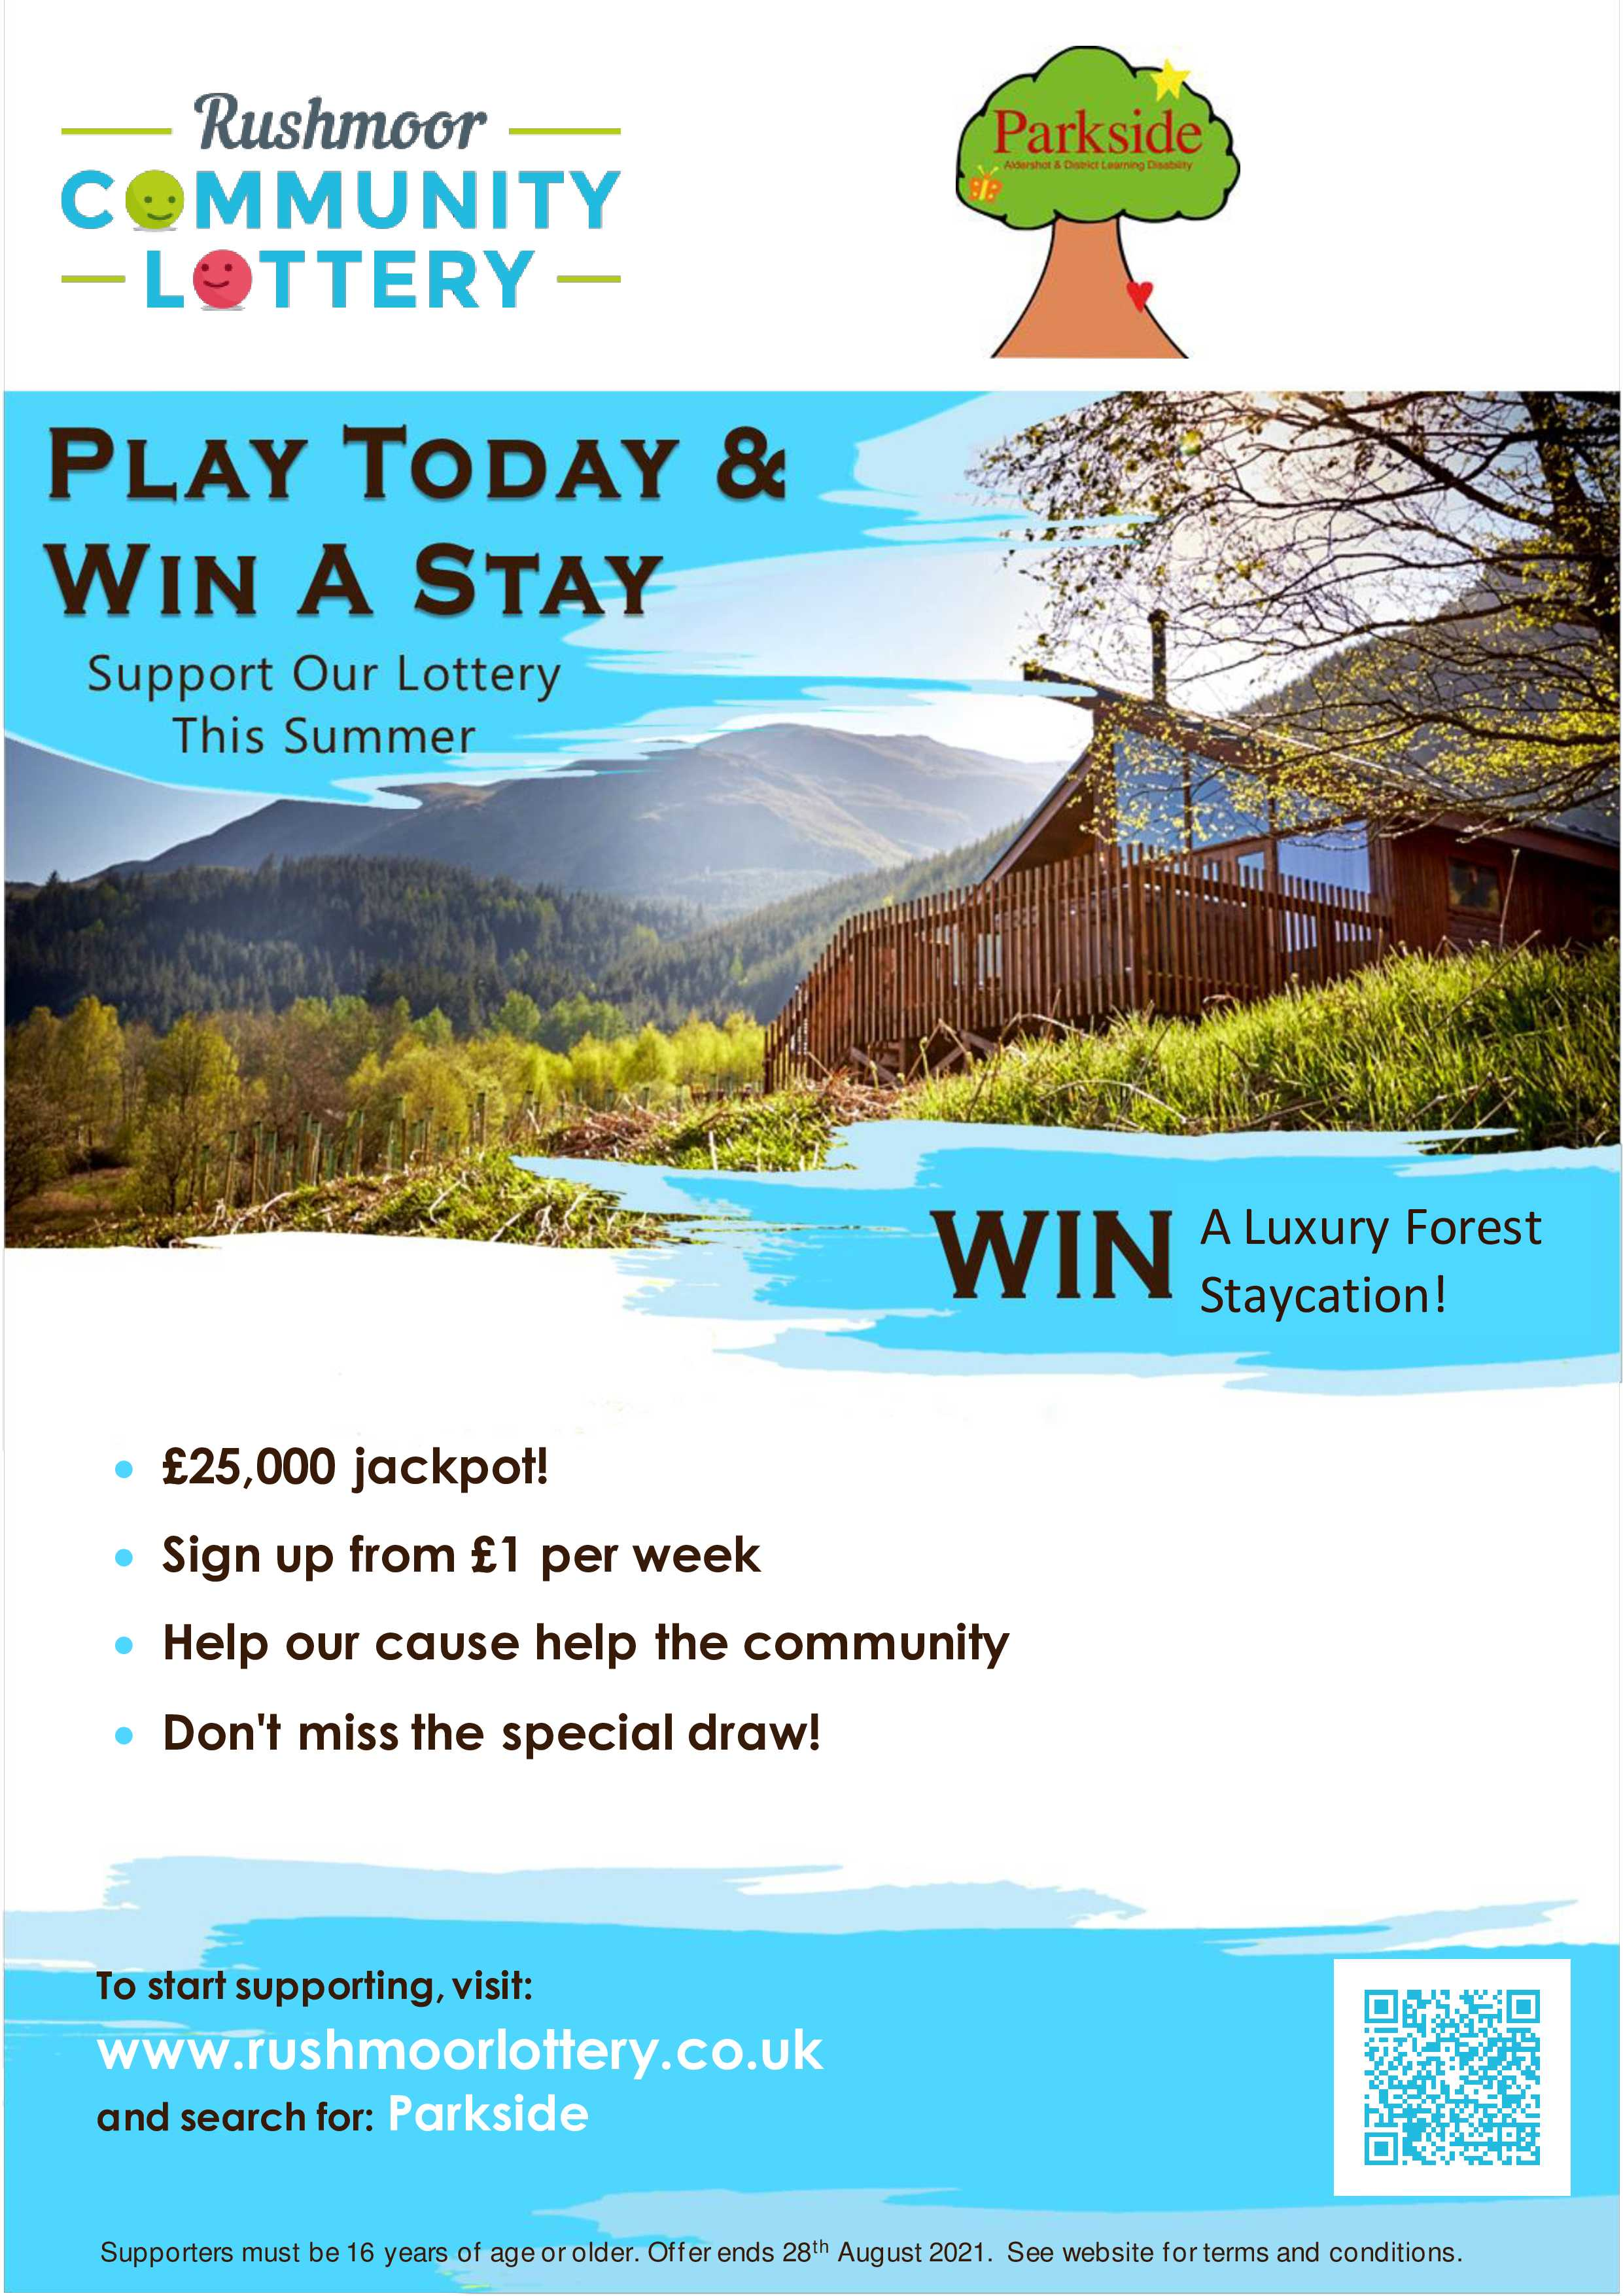 win-a-luxury-forest-staycation - image